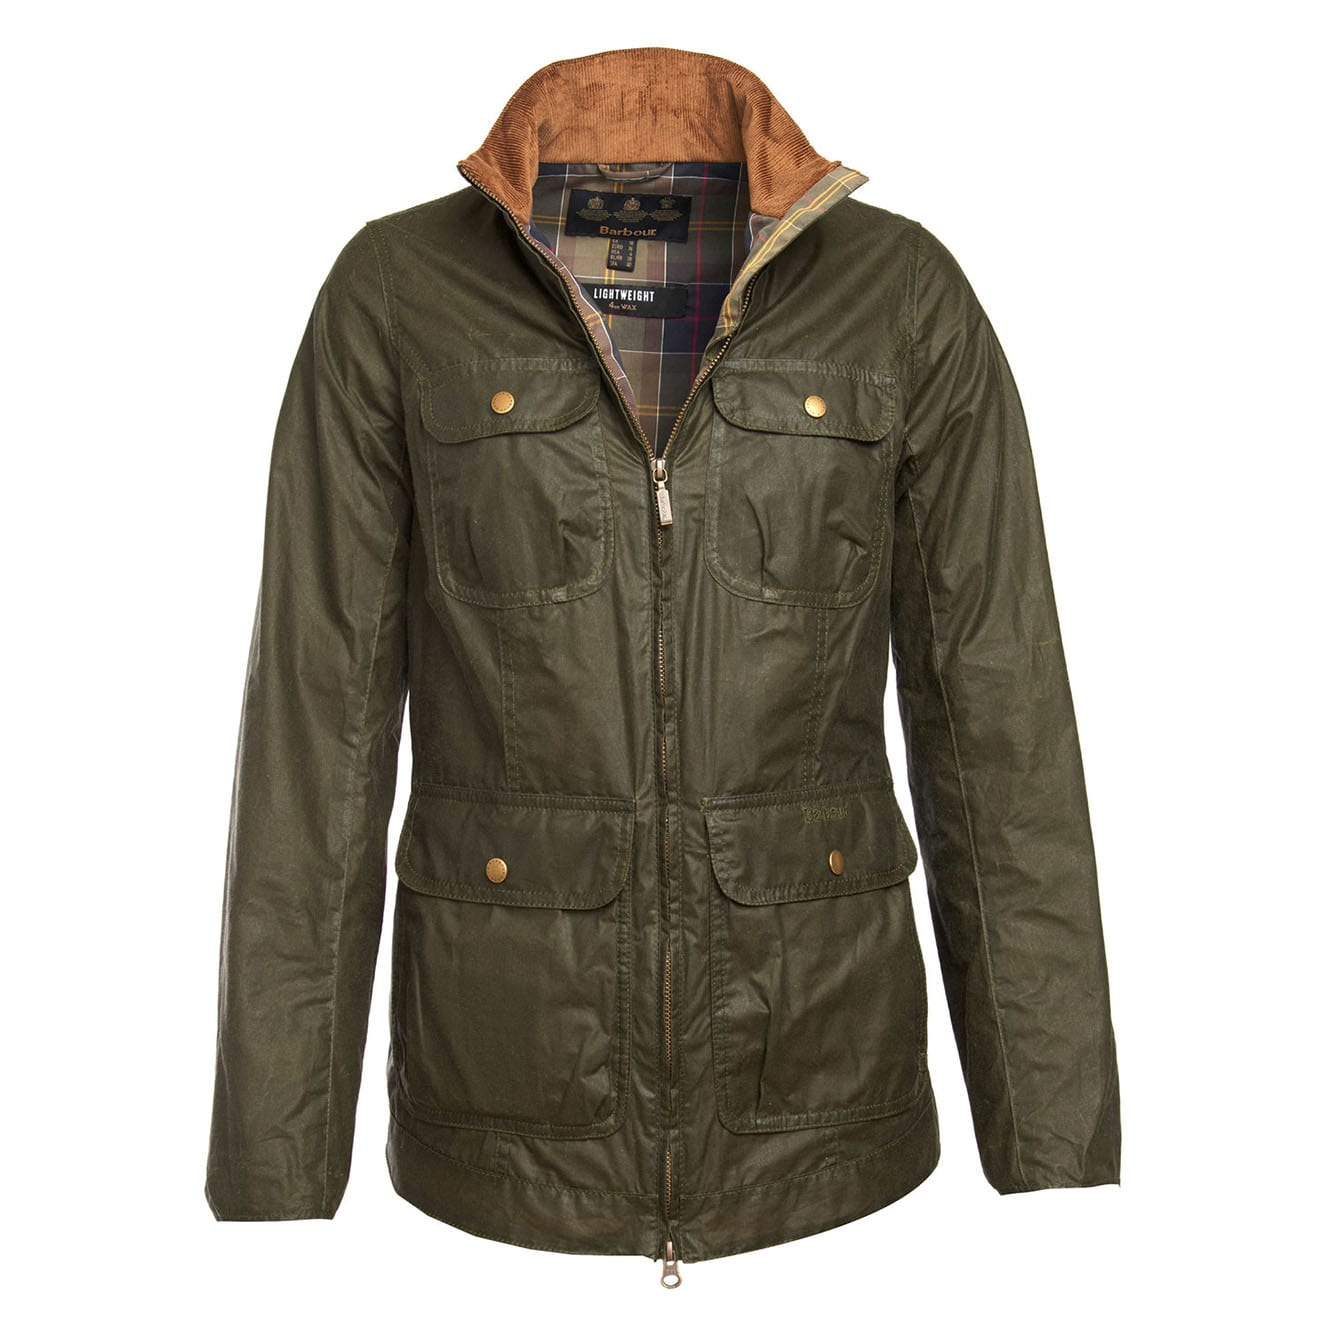 Barbour Womens Lightweight Beadnell 4oz Wax Jacket Archive Olive ... 35814bdbf0